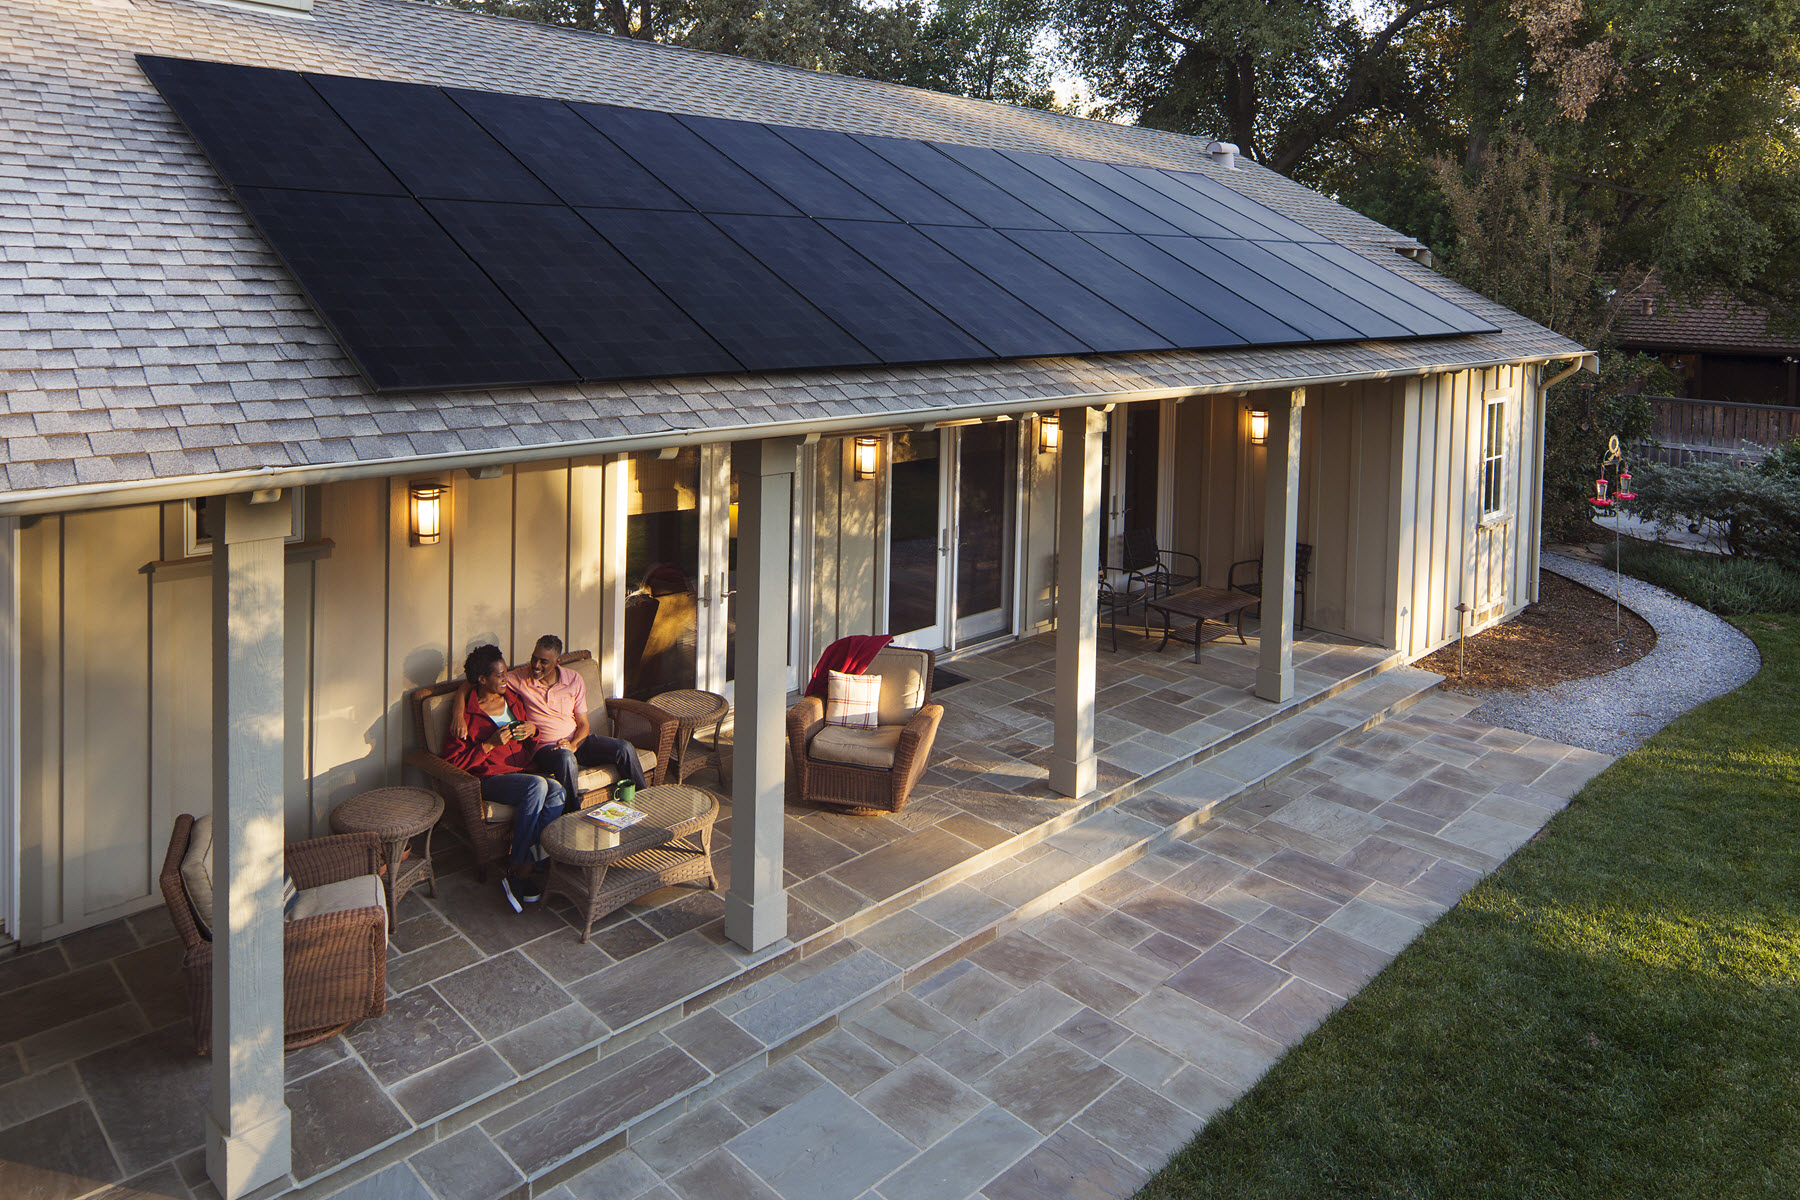 Baker Electric Solar Is Premier Source For New Sunpower